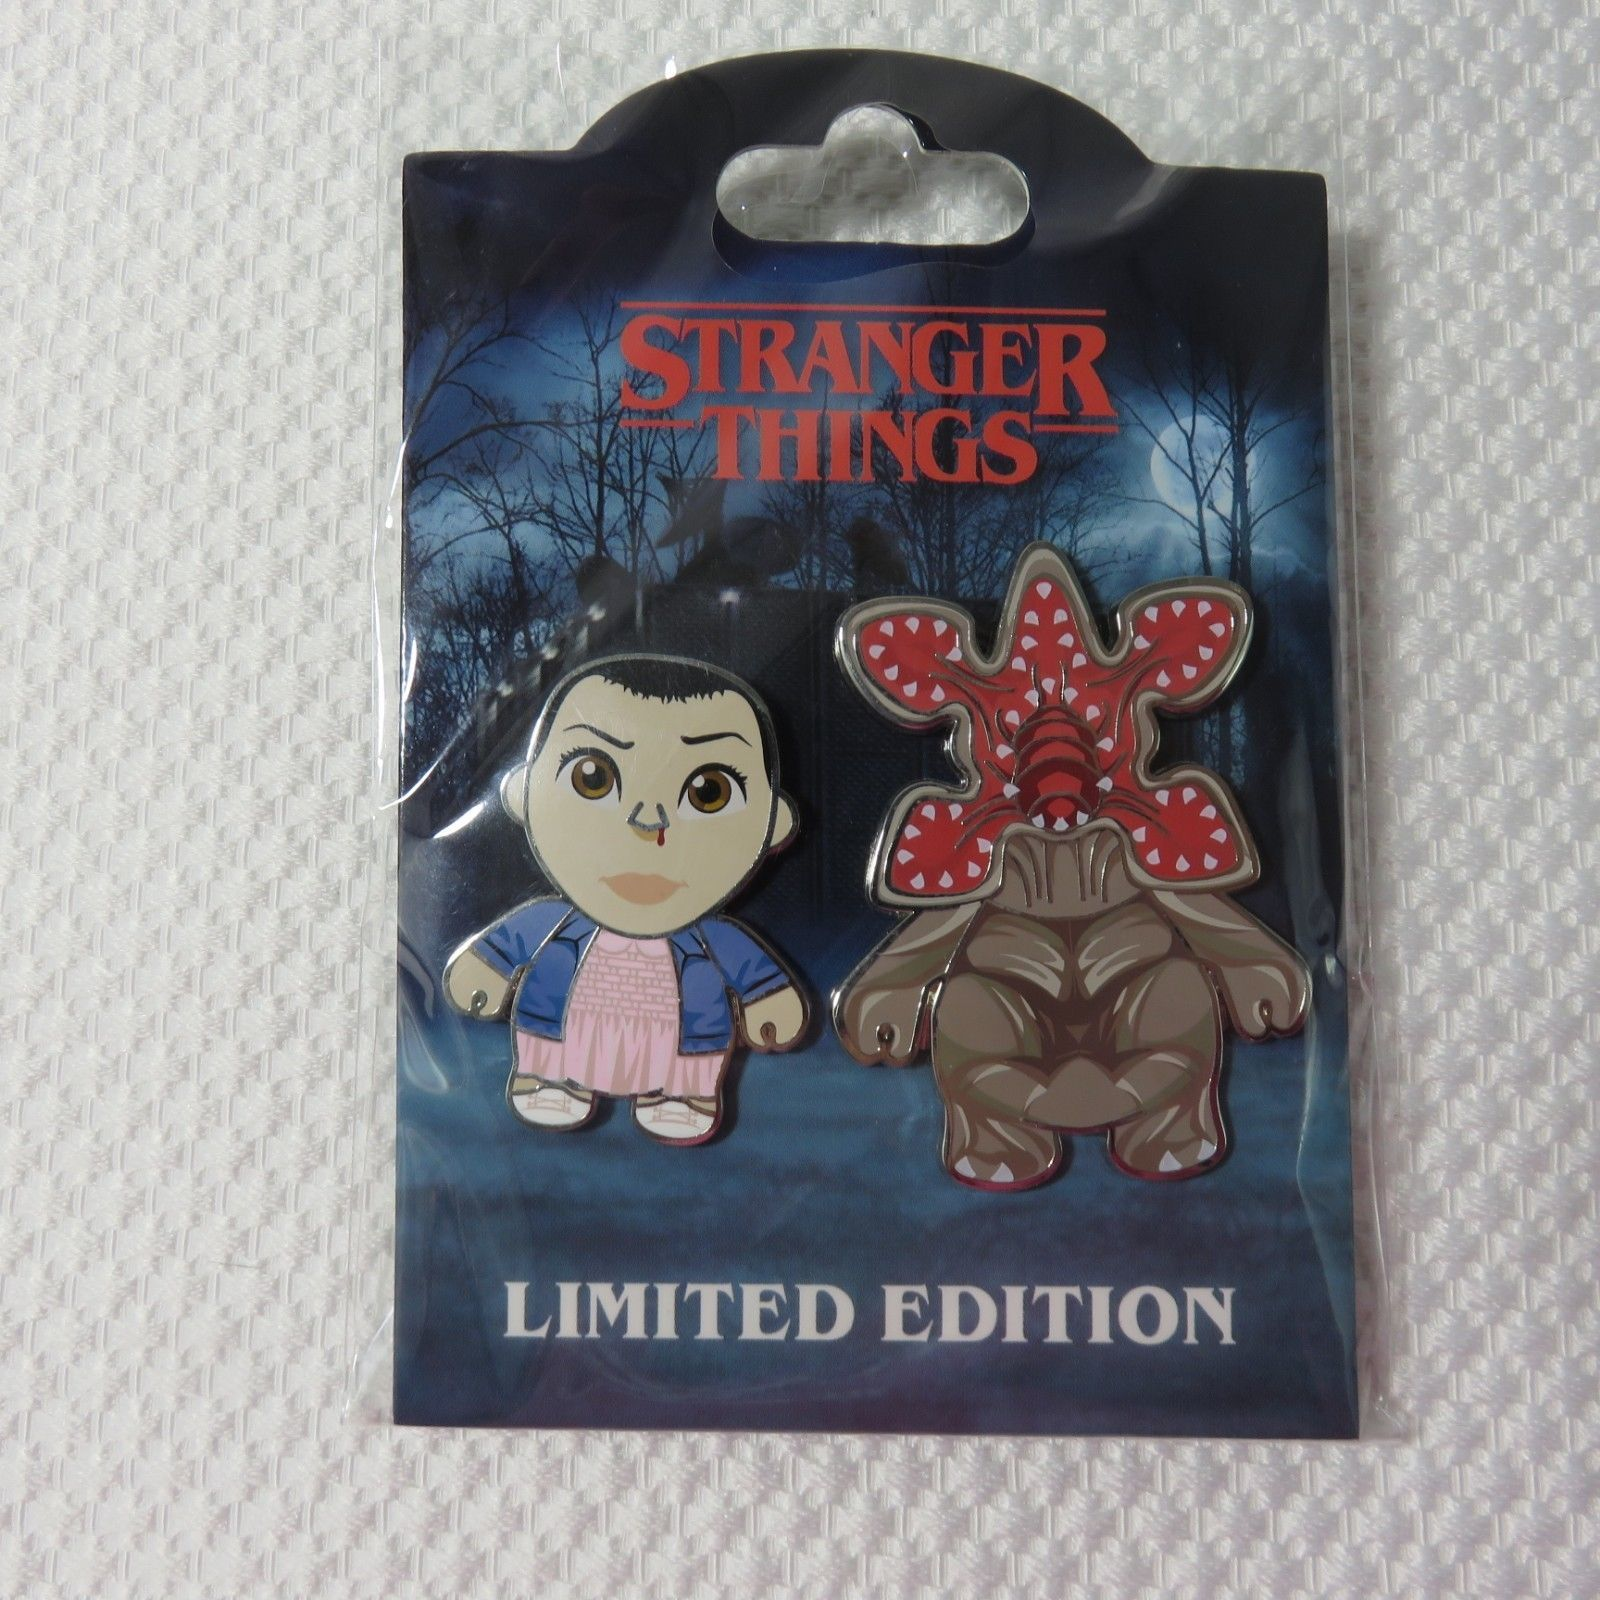 New Stranger Things Limited Edition Universal Pin Pinback Set Sold Out